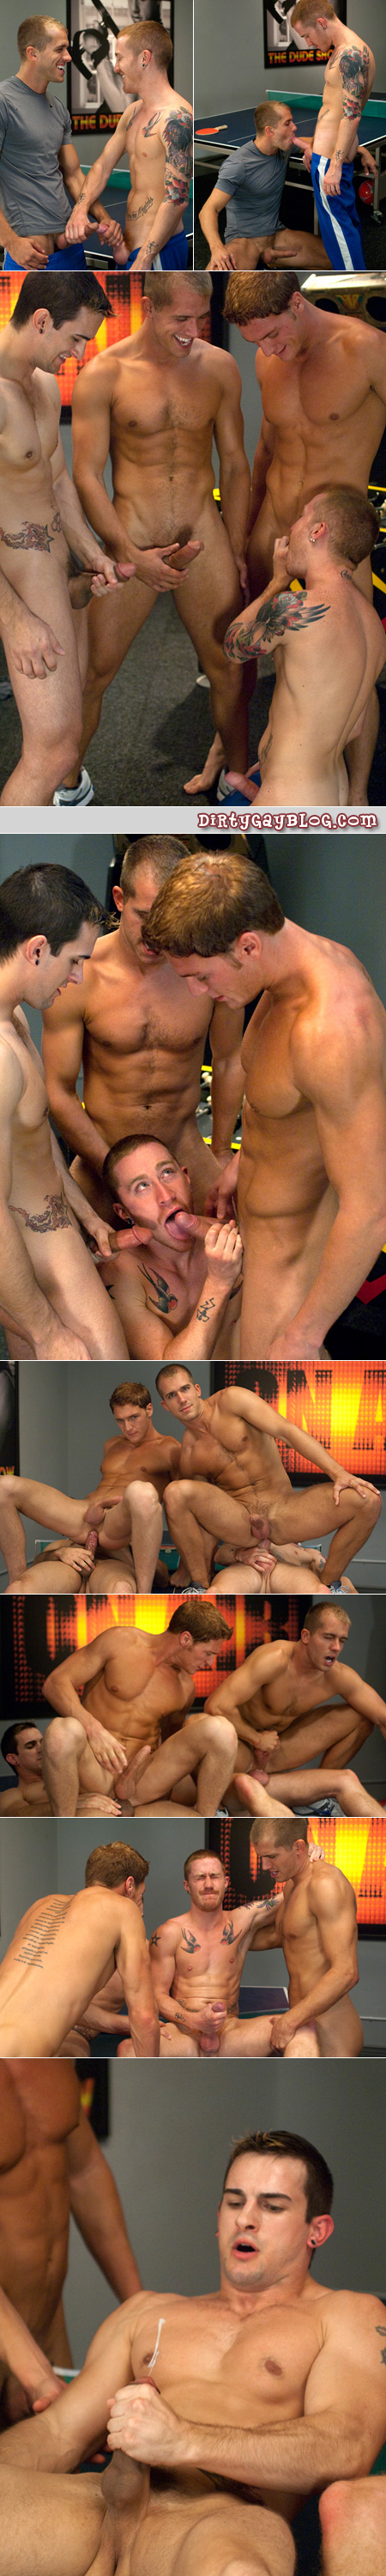 Four young, tattooed men have group gay sex together and get their enormous cocks off.